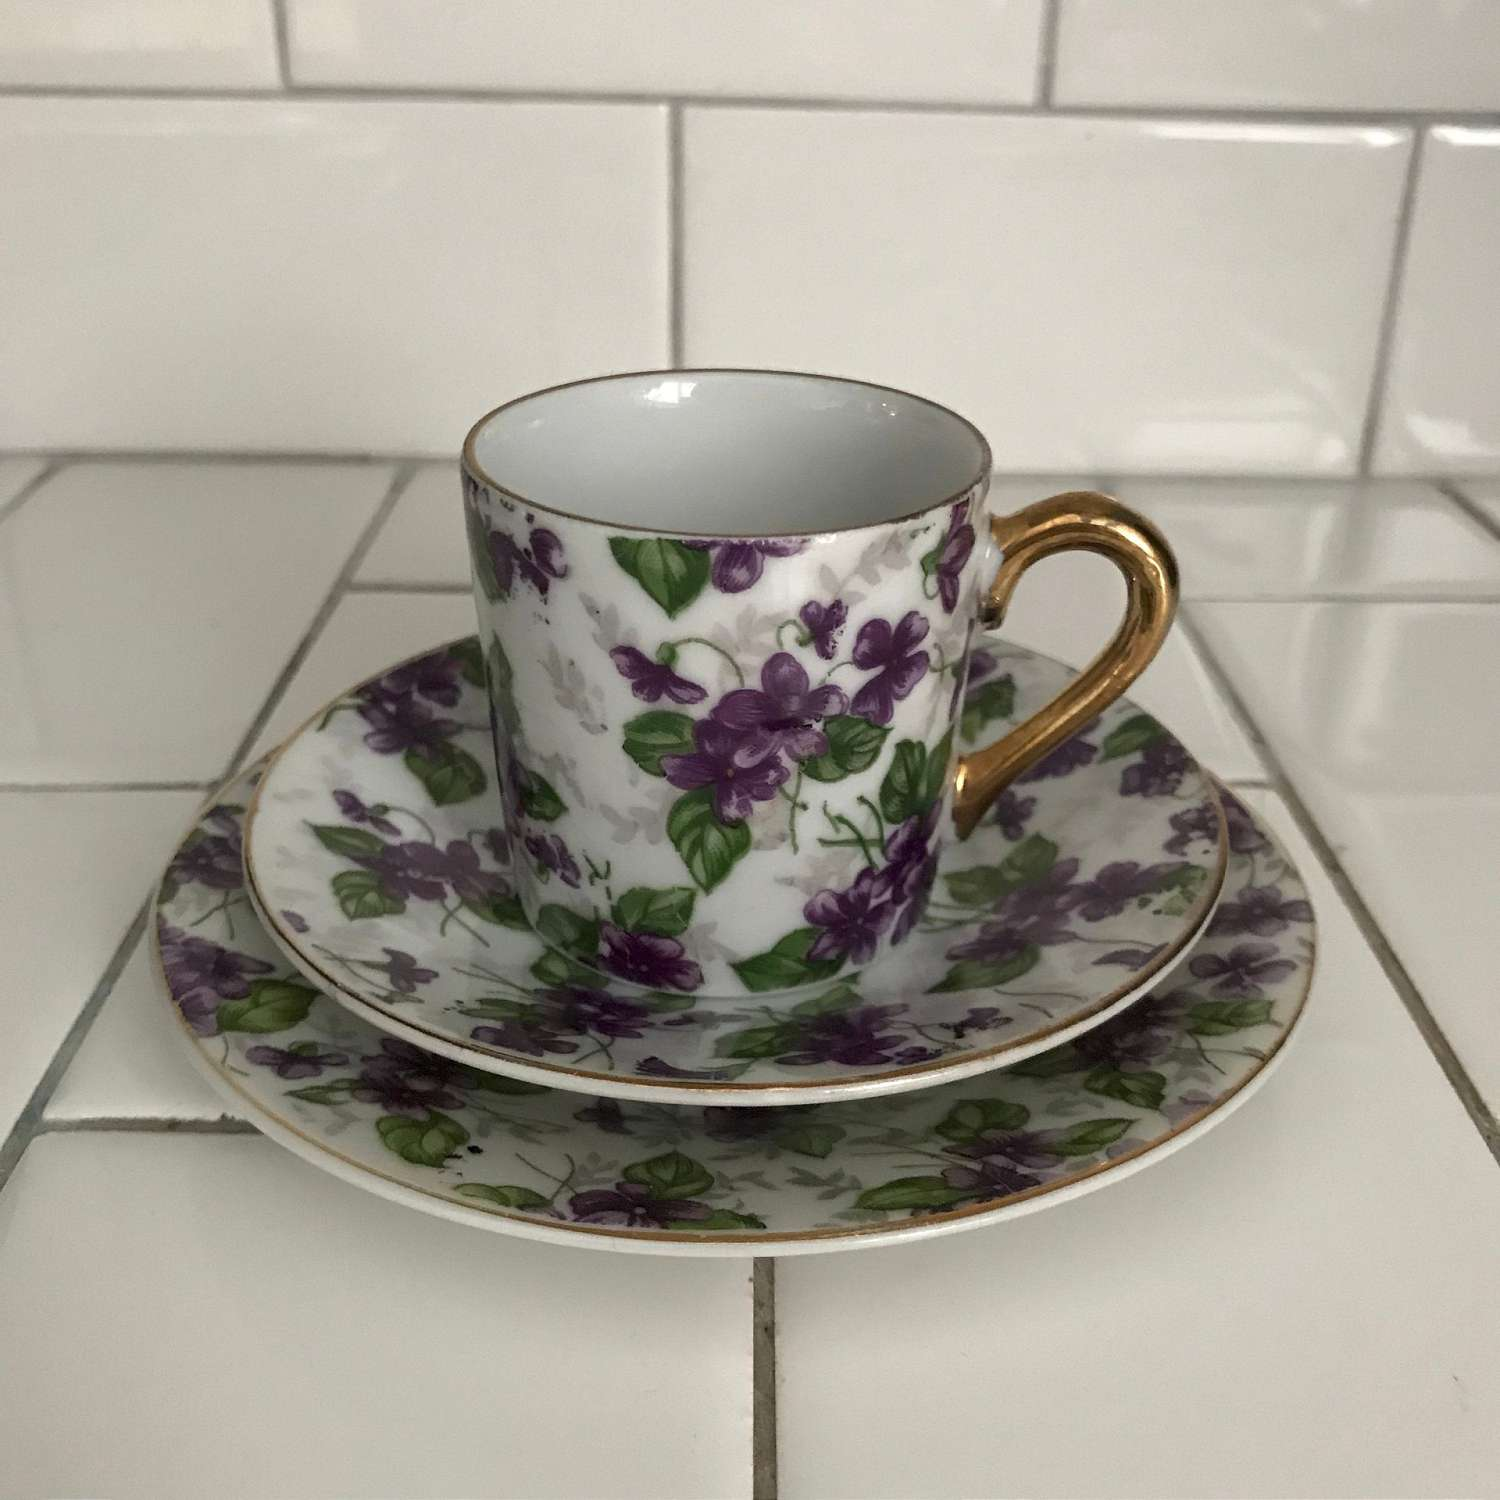 Vintage Inarco Japan Demitasse Tea Cup Saucer Snack Plate Purple Violets Gold Trim Violets Hand Painted Collectible Display Farmhouse Carol S True Vintage And Antiques